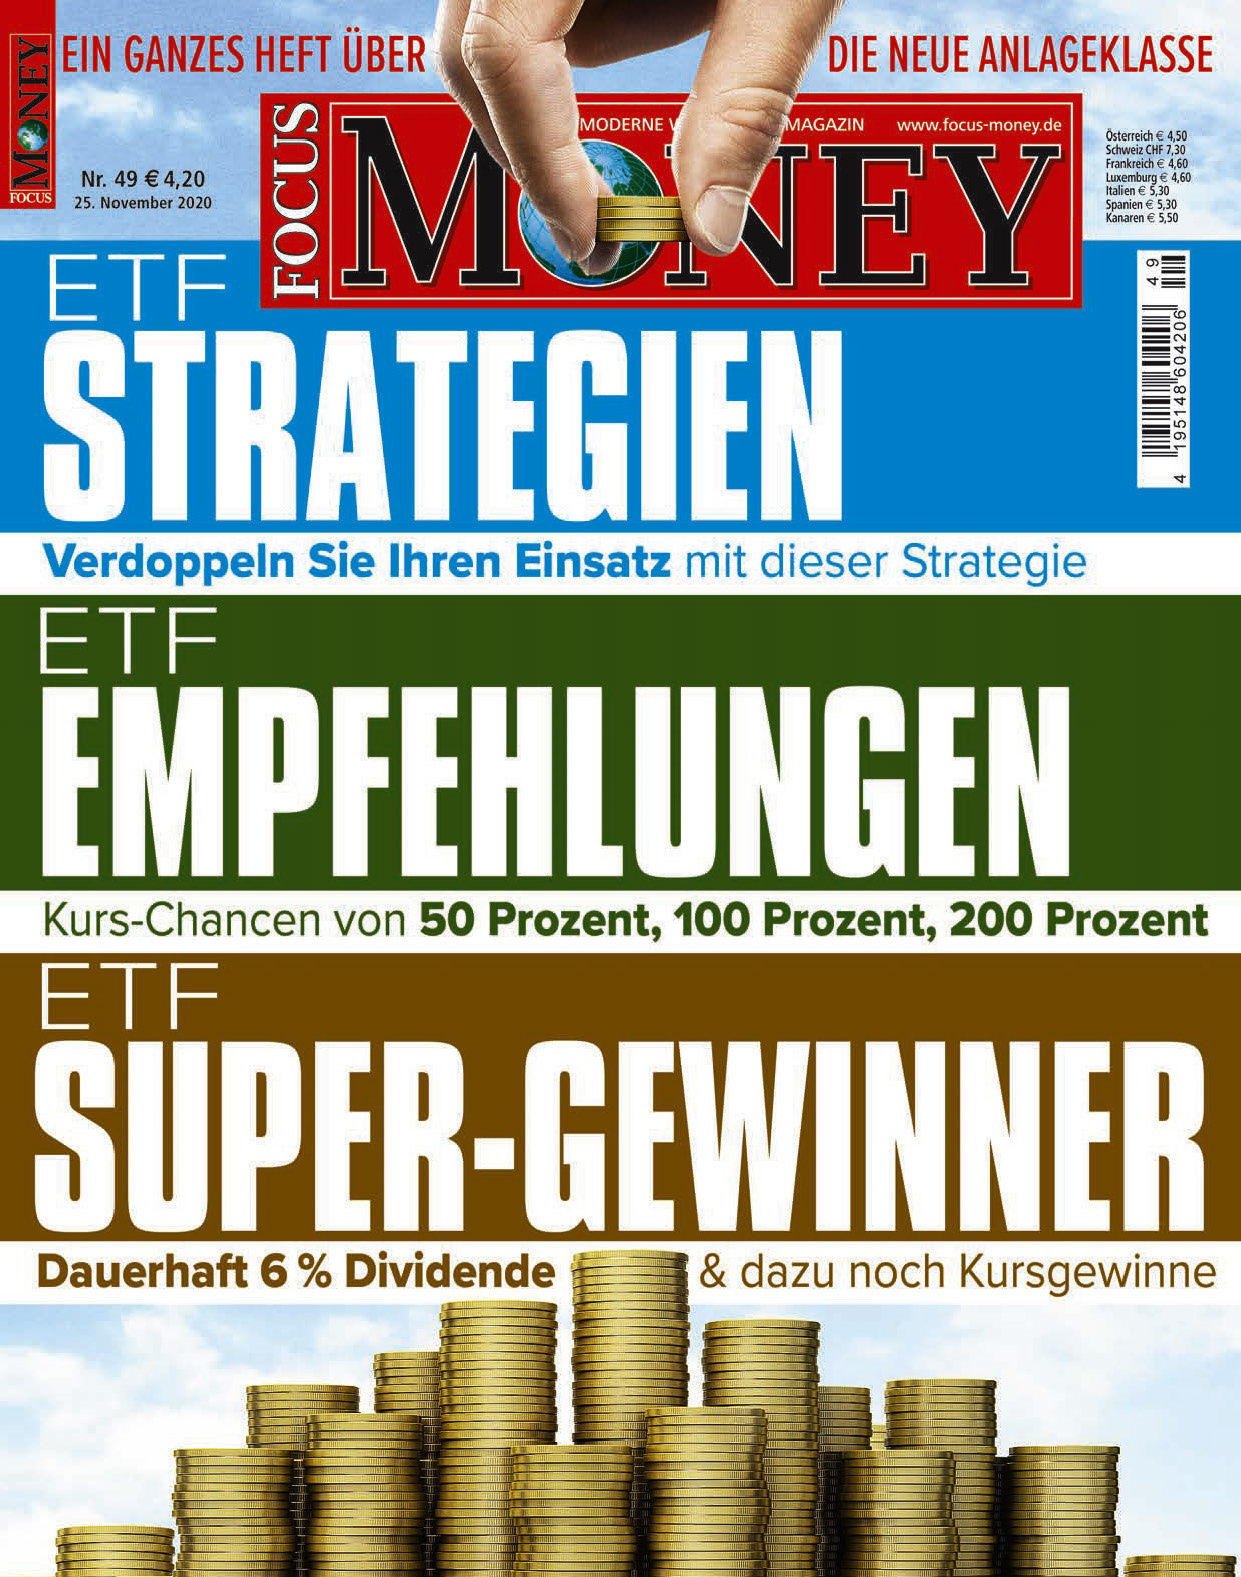 FOCUS-MONEY FOCUS MONEY – ETF-Strategien, ETF-Empfehlungen, ETF-Super-Gewinner